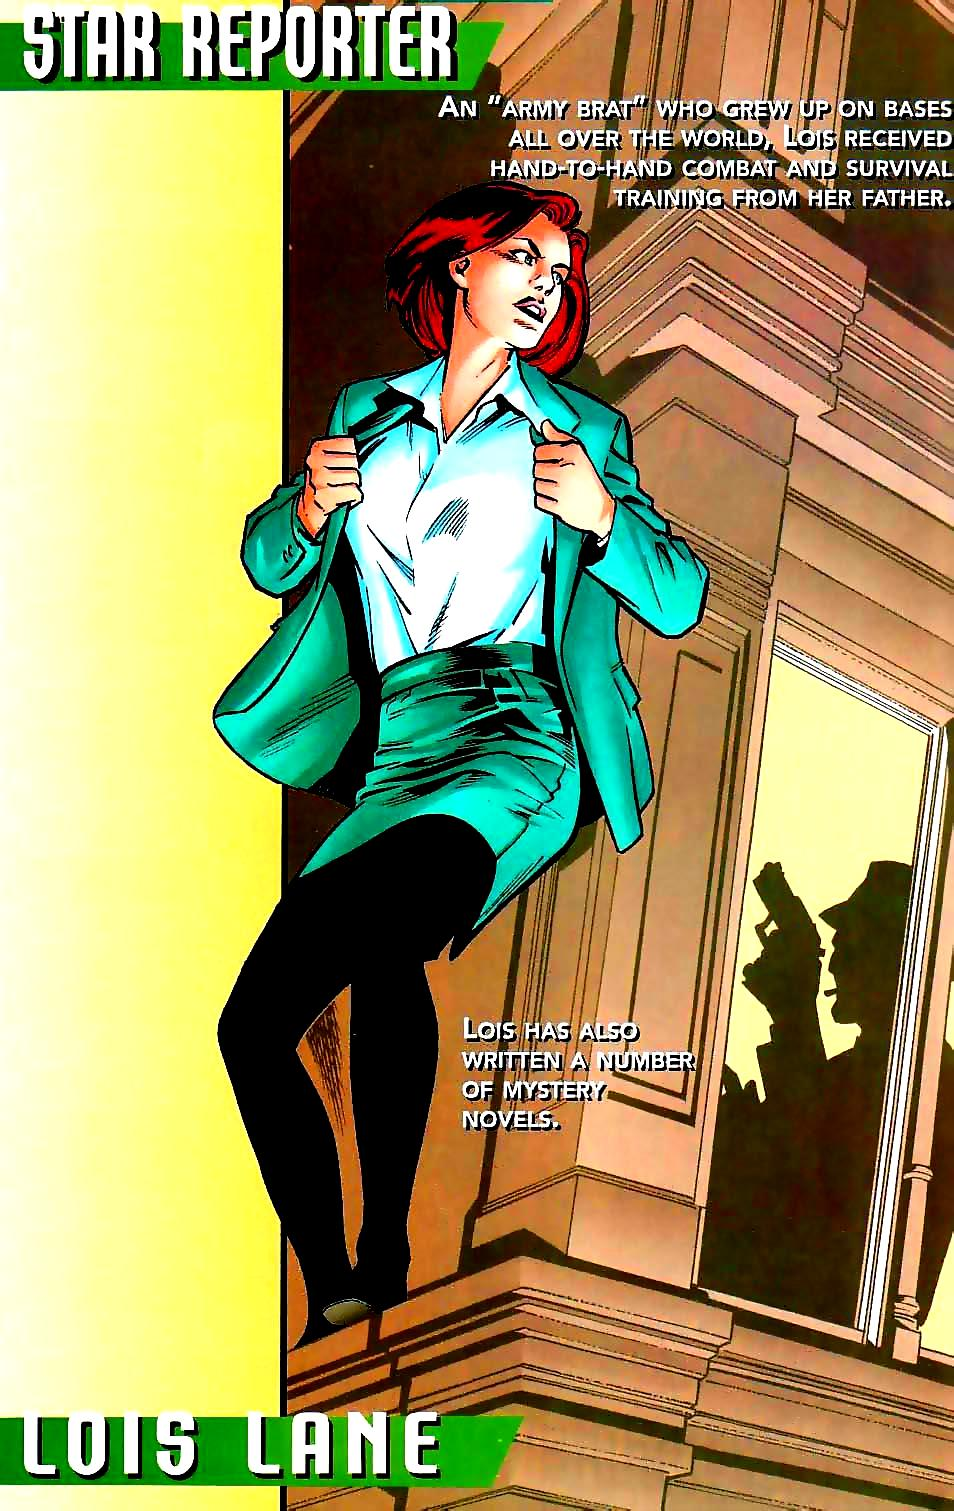 http://img2.wikia.nocookie.net/__cb20110919184155/marvel_dc/images/4/46/Lois_Lane_0004.jpg